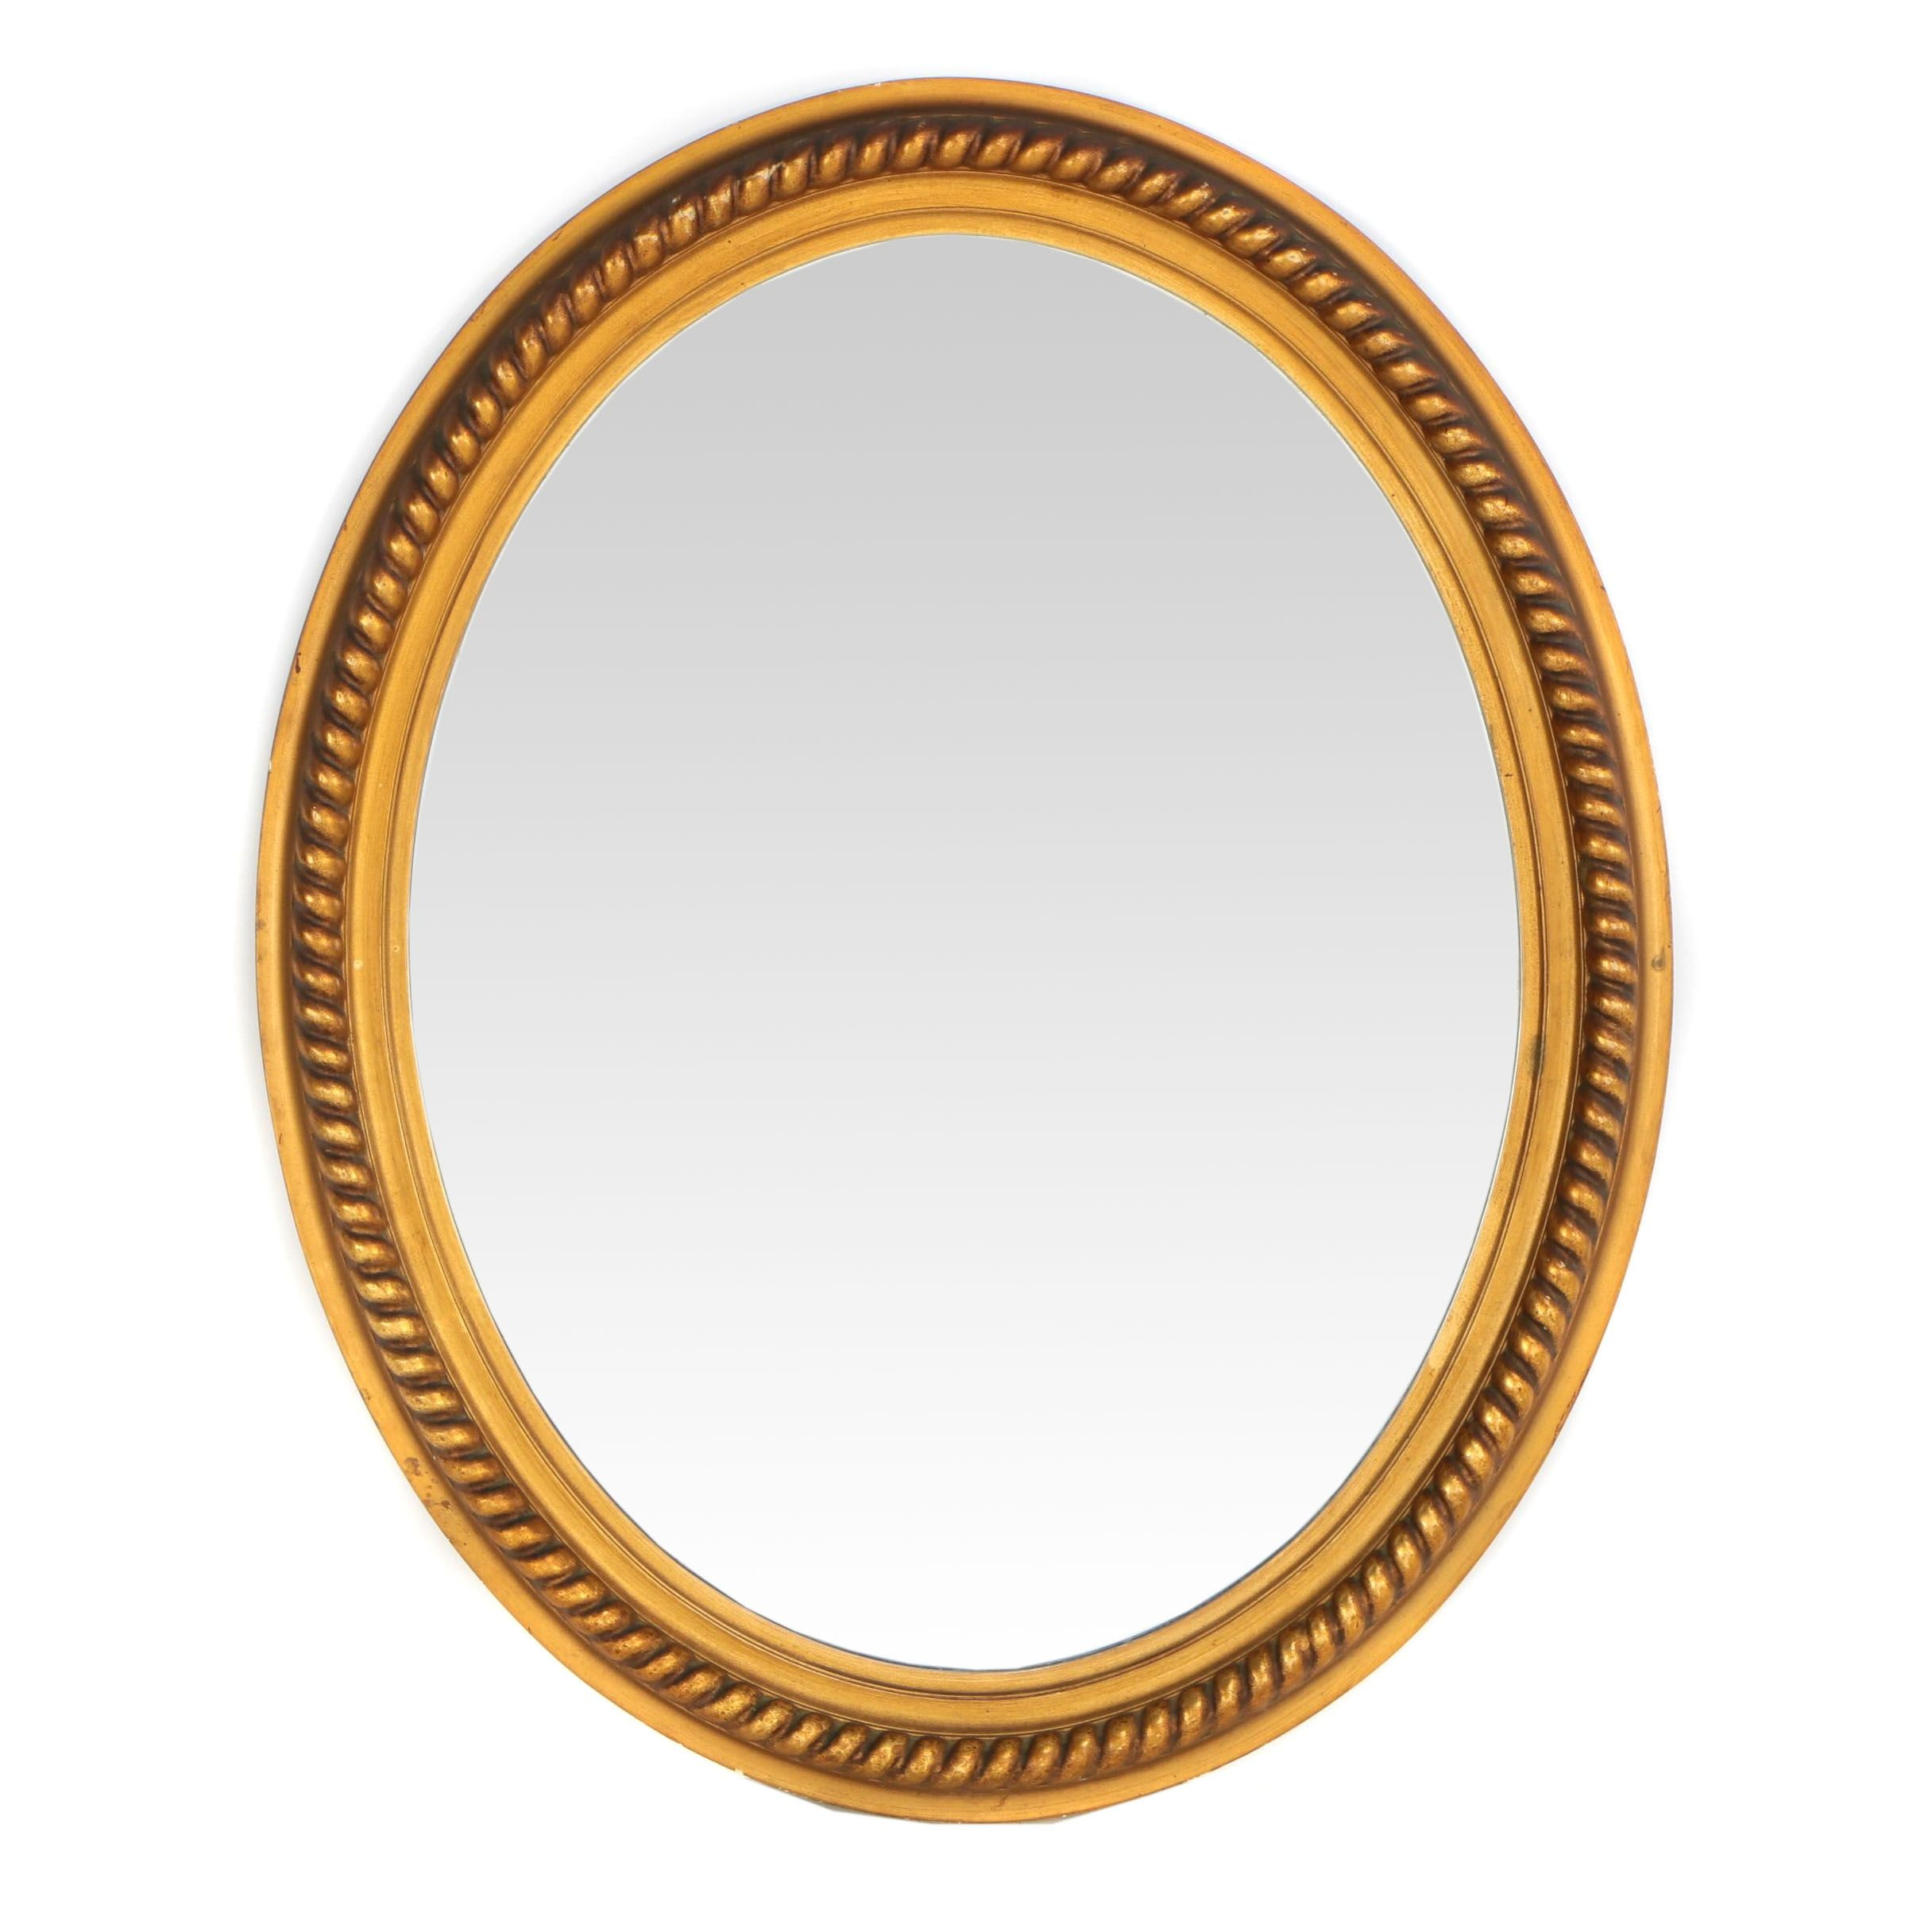 Neoclassical Giltwood and Gesso Oval Wall Mirror, 20th Century